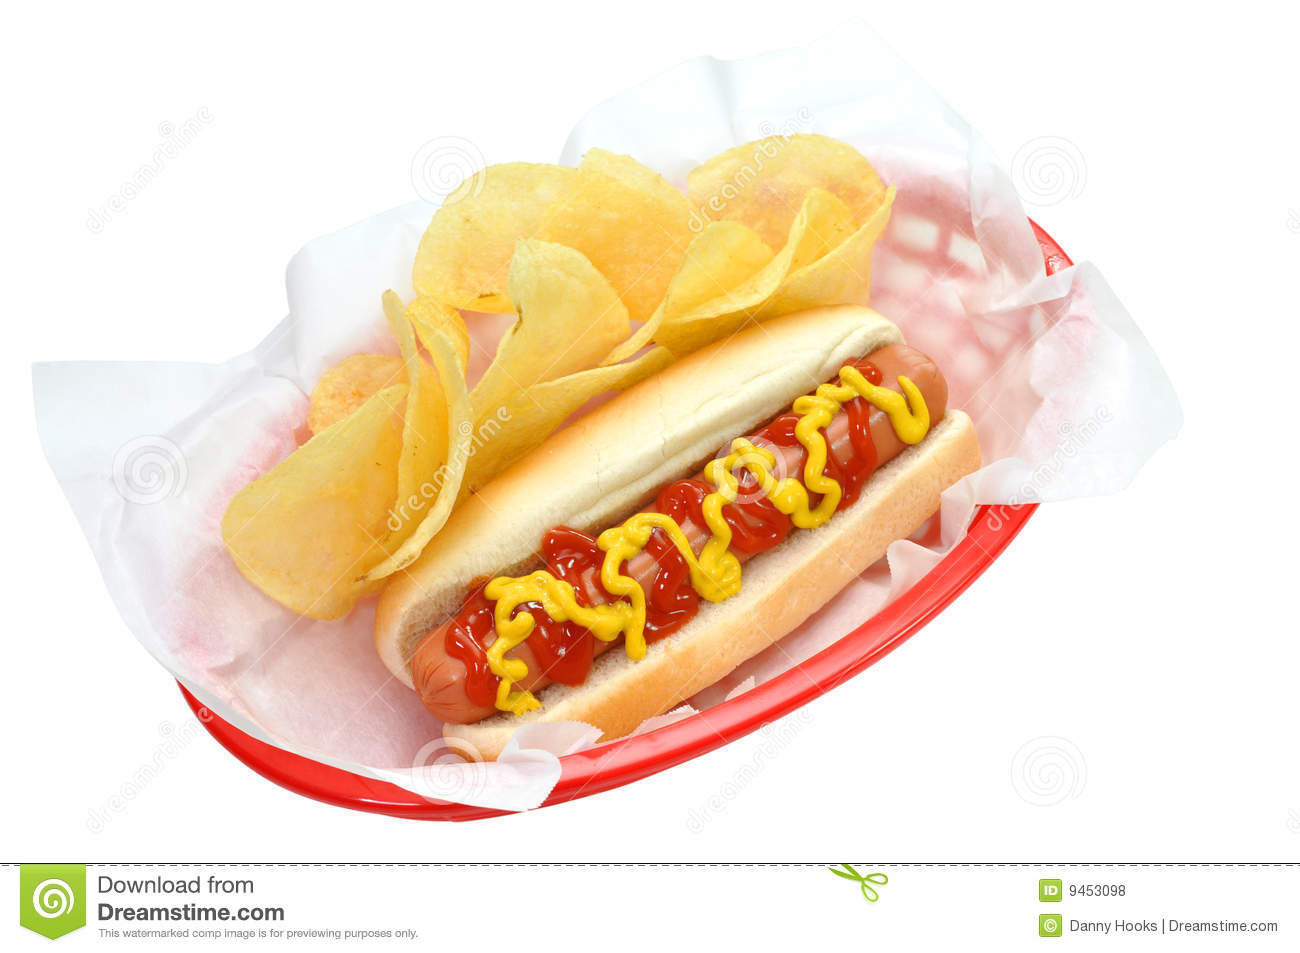 Hot Dogs And Chips Images